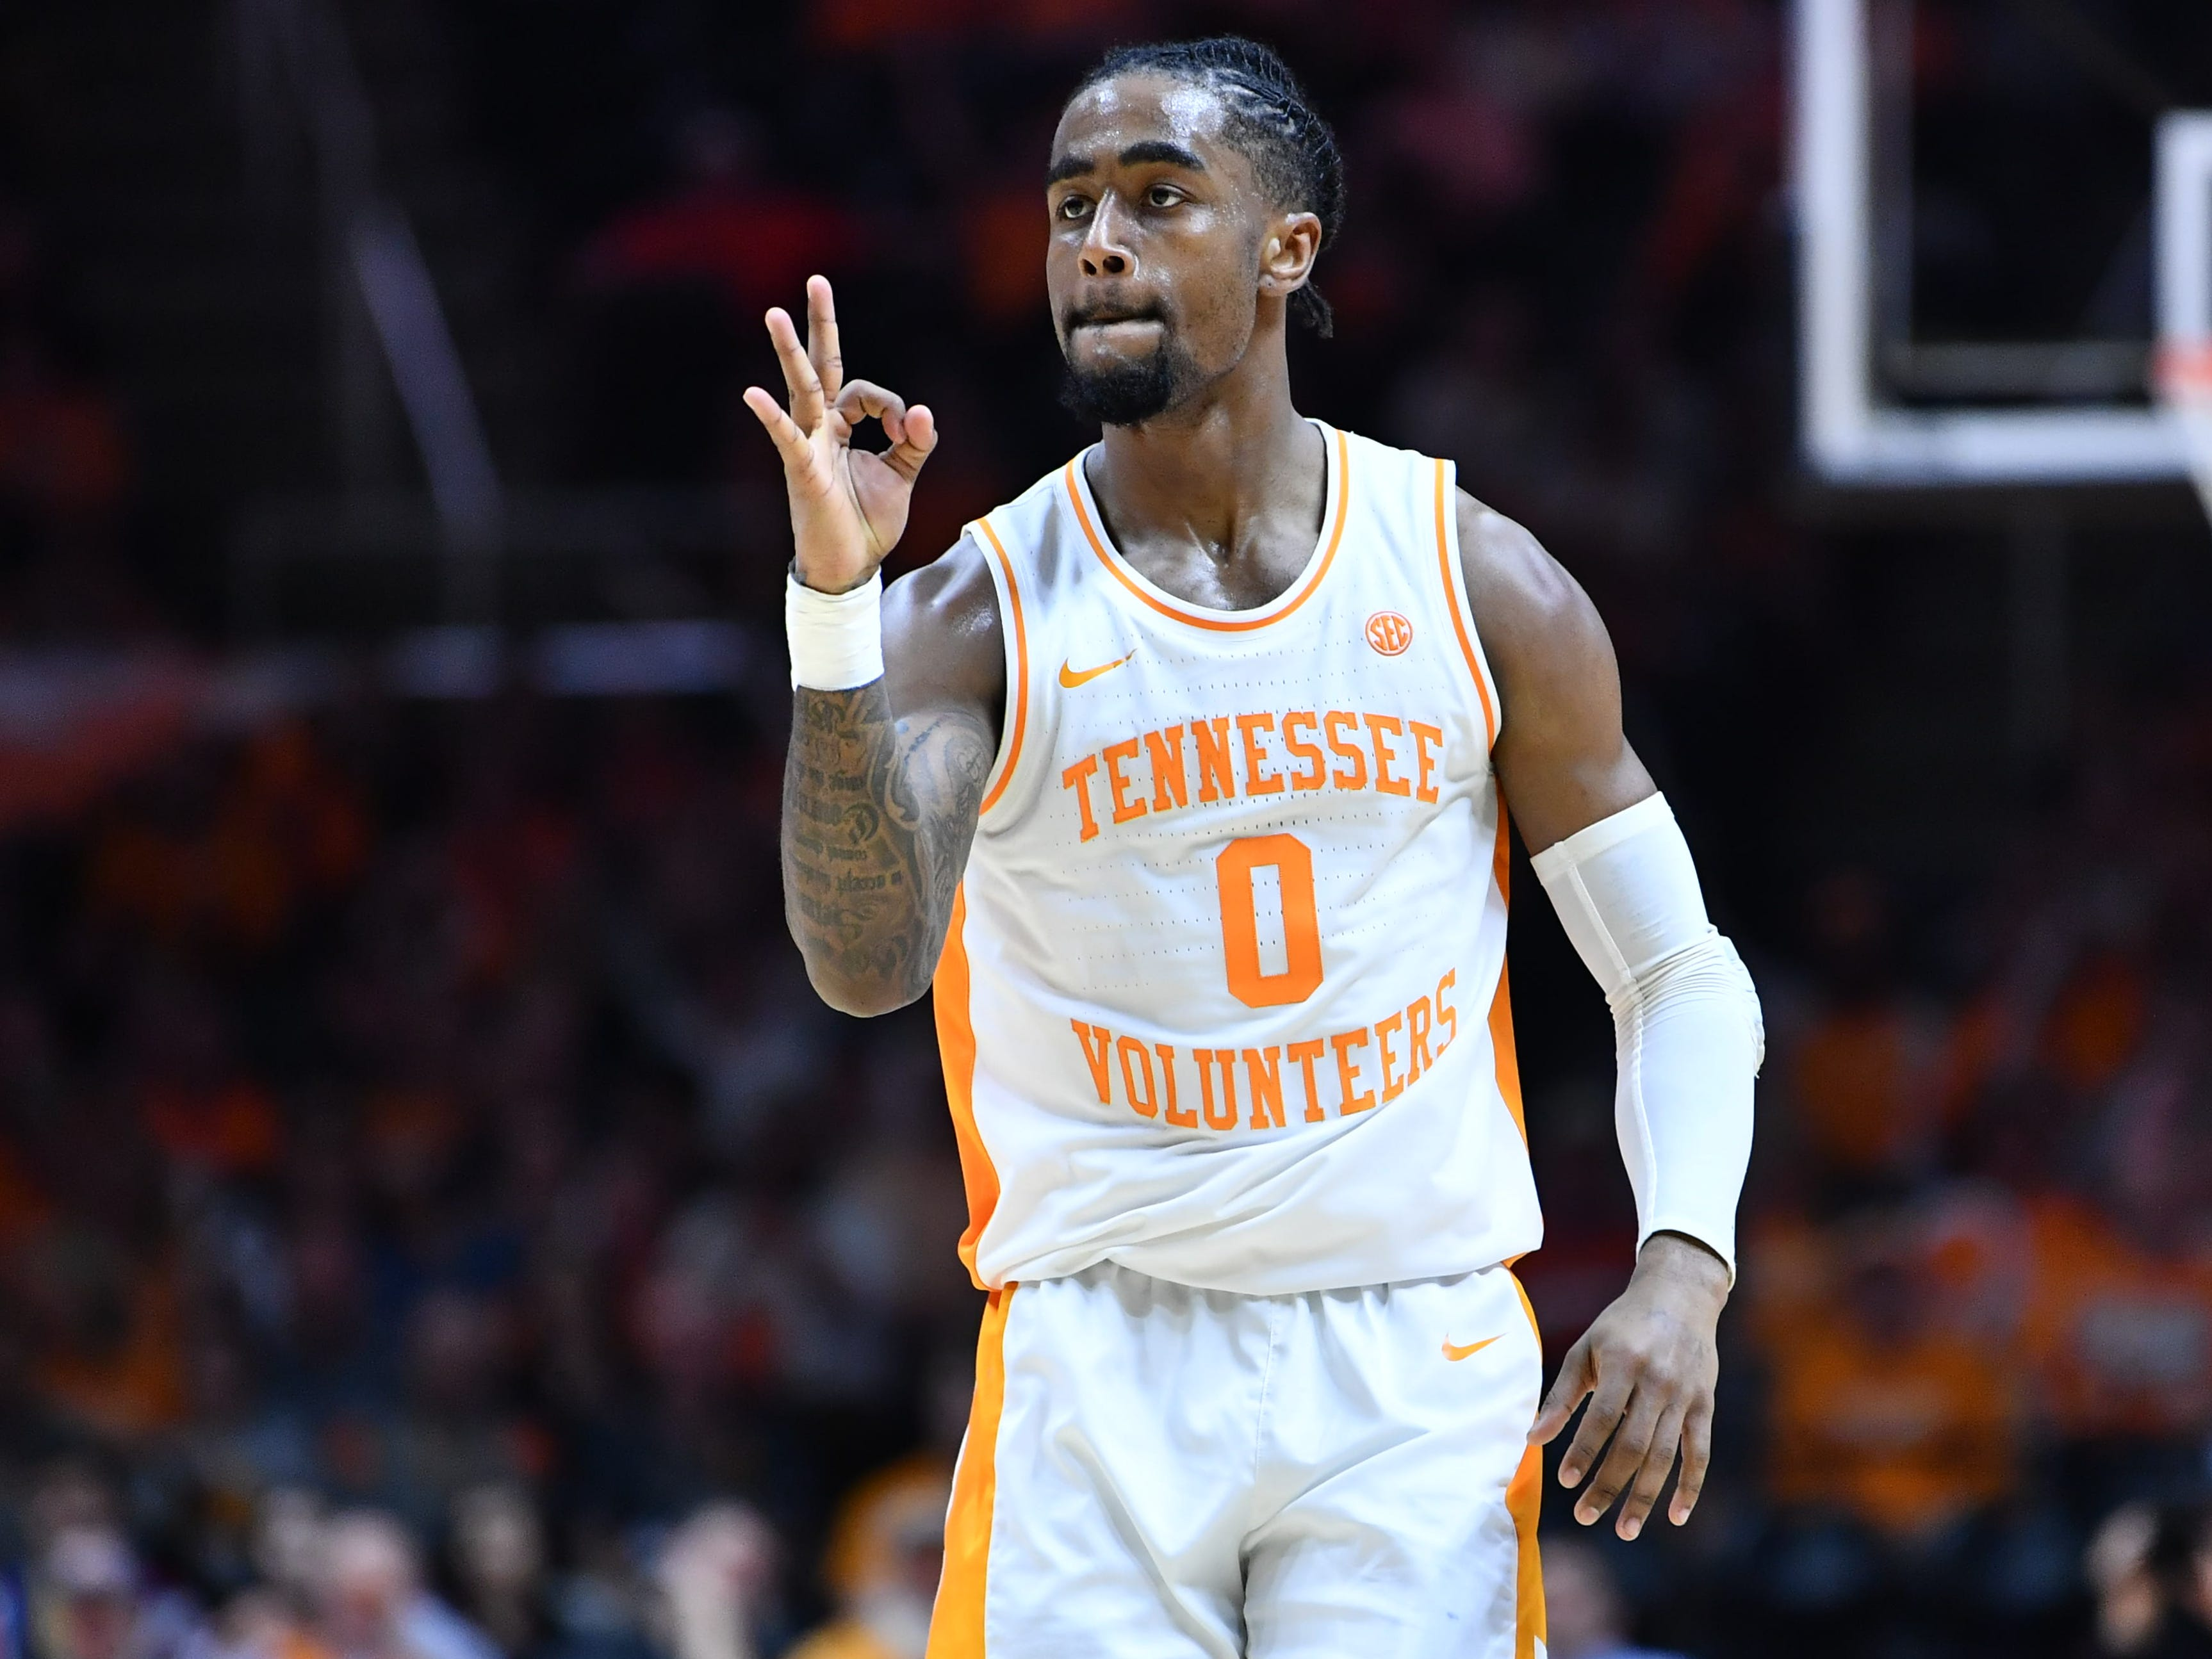 Could Tennessee men's basketball, Kentucky both be Final Four bound?